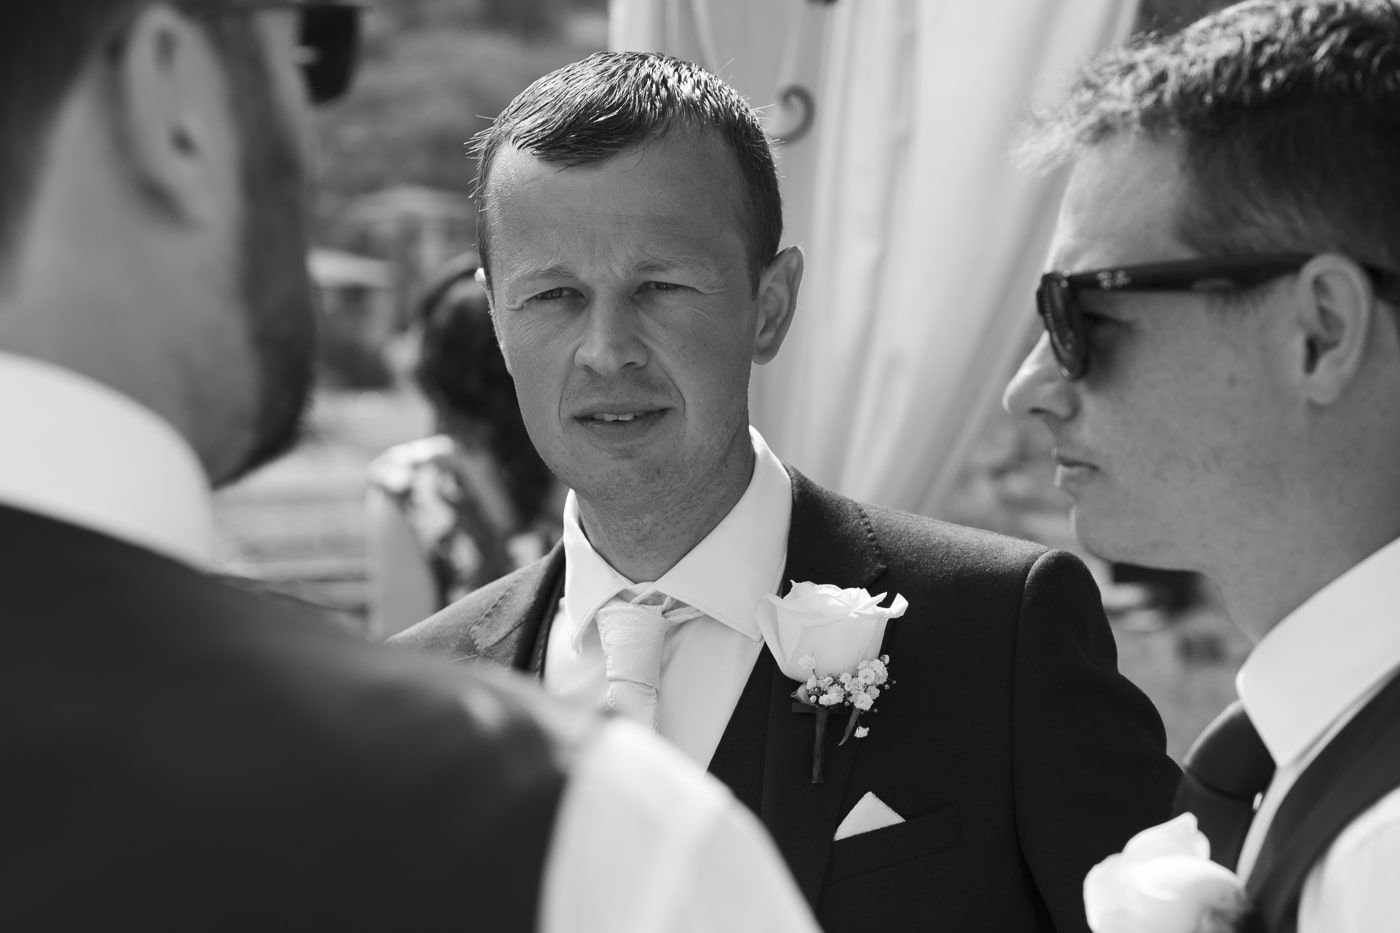 Groom with flower in his lapel talking to men with sunglasses on